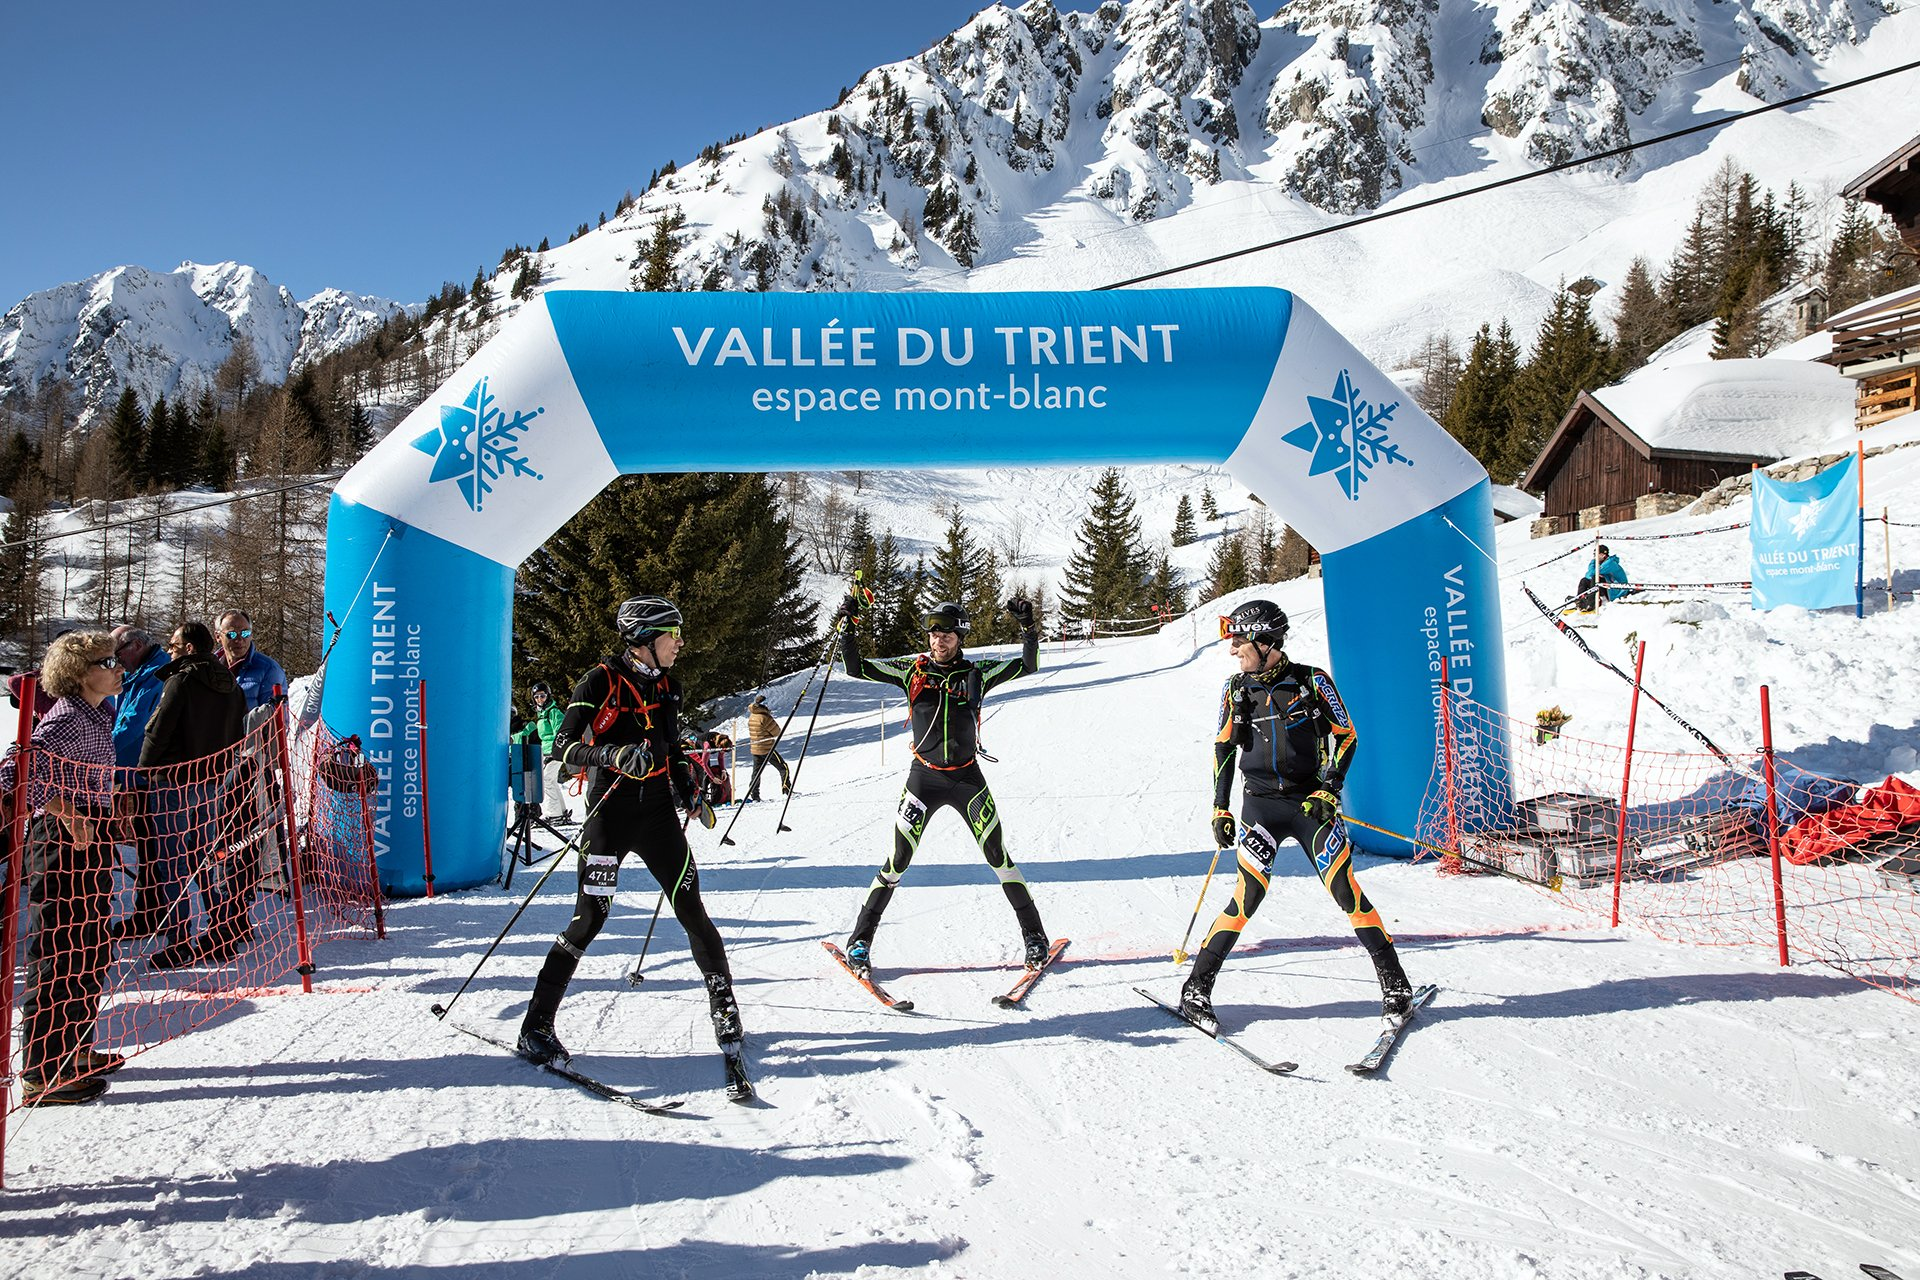 /UserFiles/File/Annuaire/annuaire_selections/vall/vallee-du-trient-evenement-hiver-2.jpg